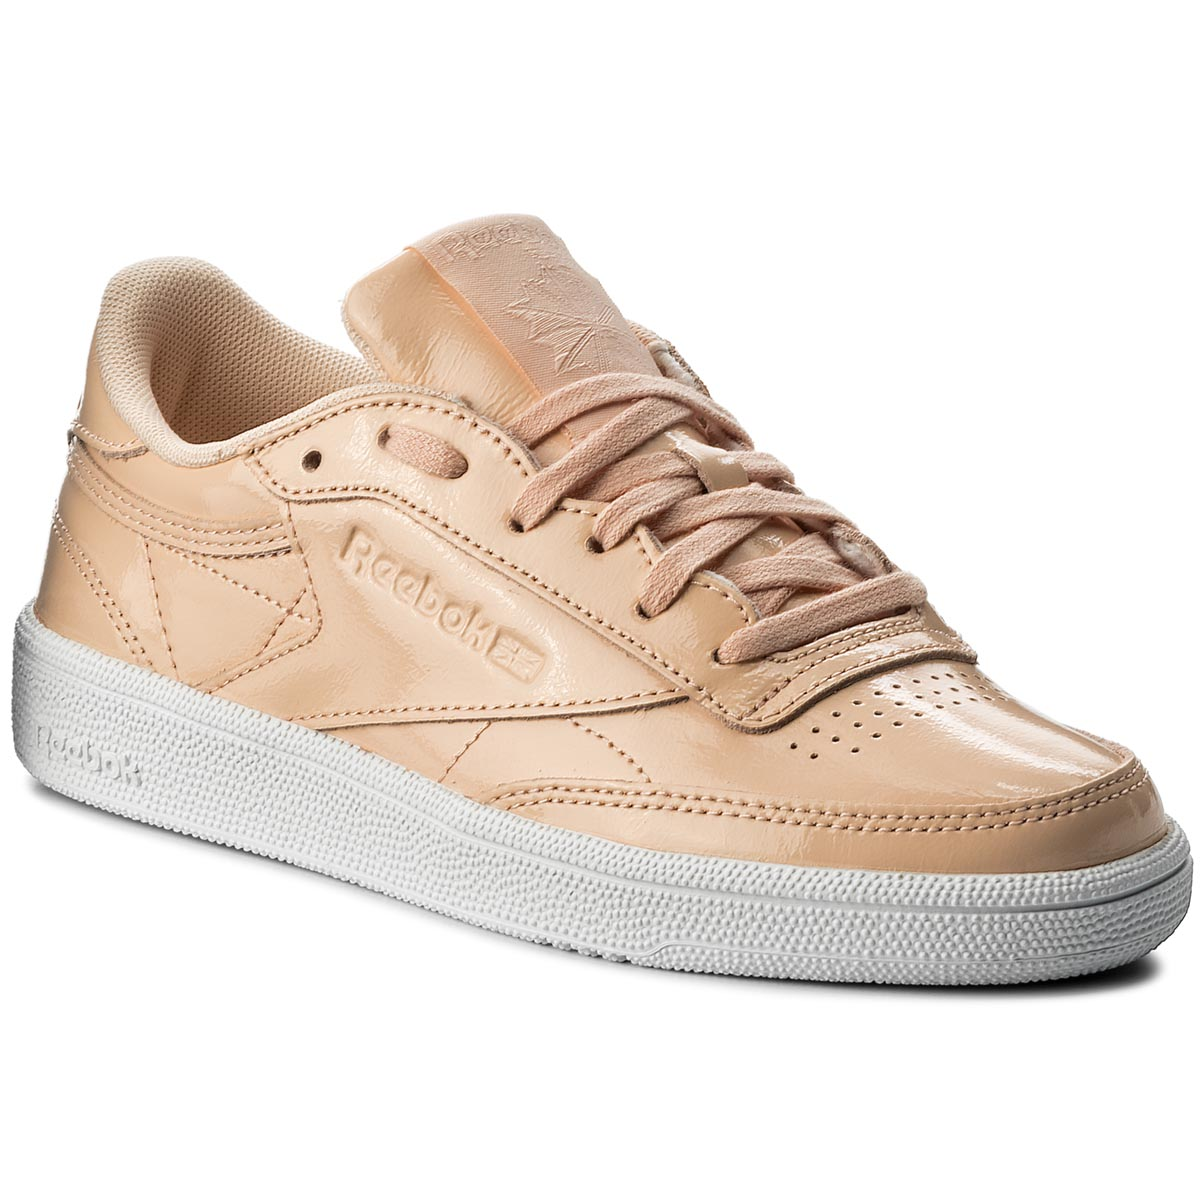 Image of Scarpe Reebok - Club C 85 Patent BS9778 Desert Dust/White